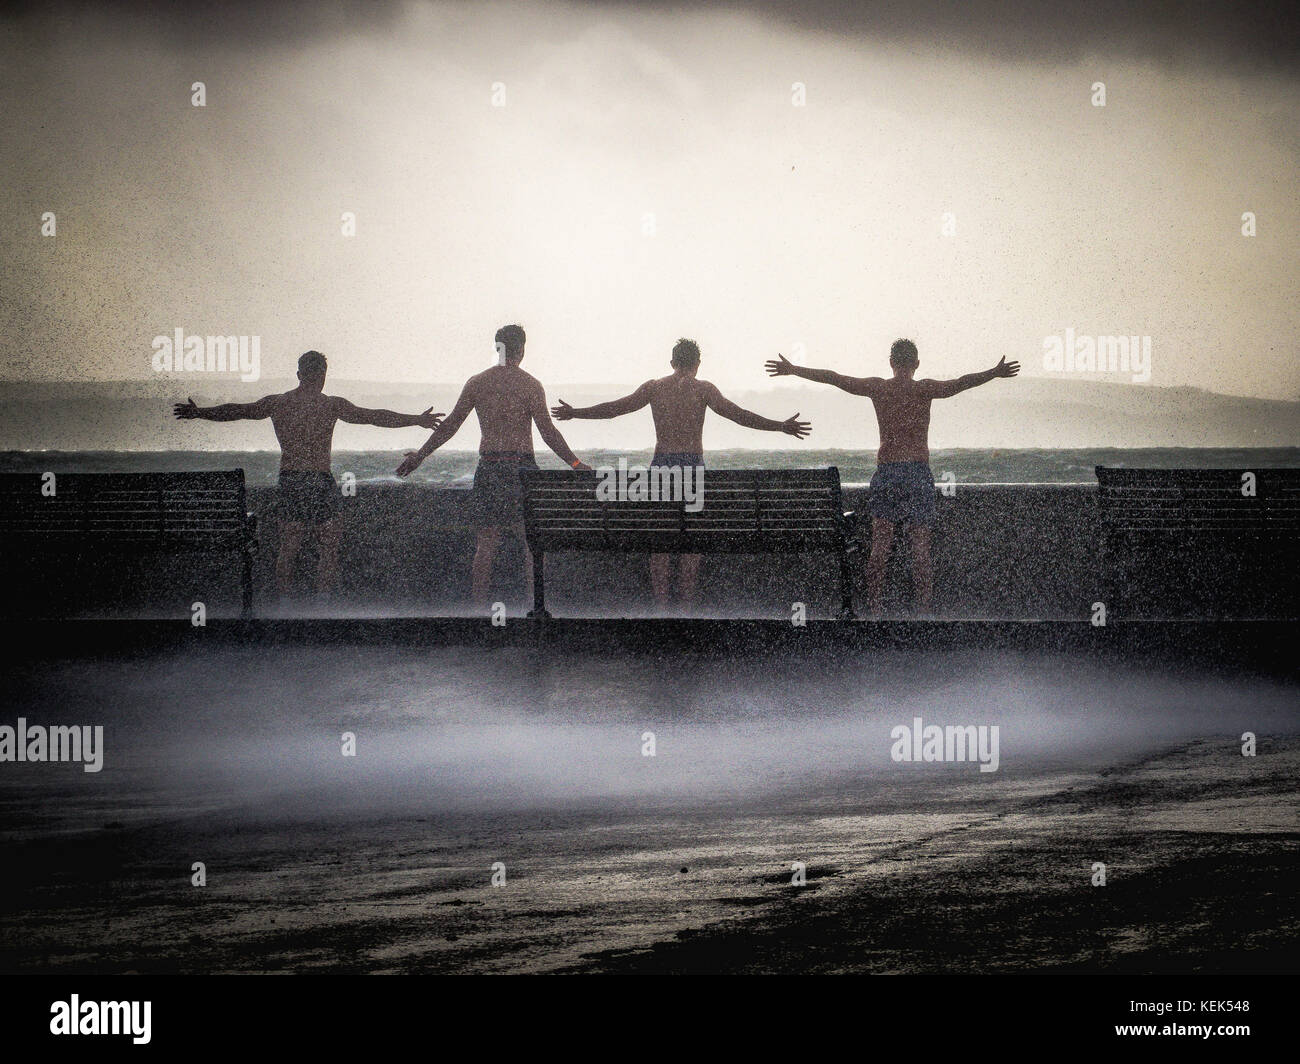 southsea-portsmouth-uk-21st-oct-2017-uk-weather-a-group-of-young-men-KEK548.jpg